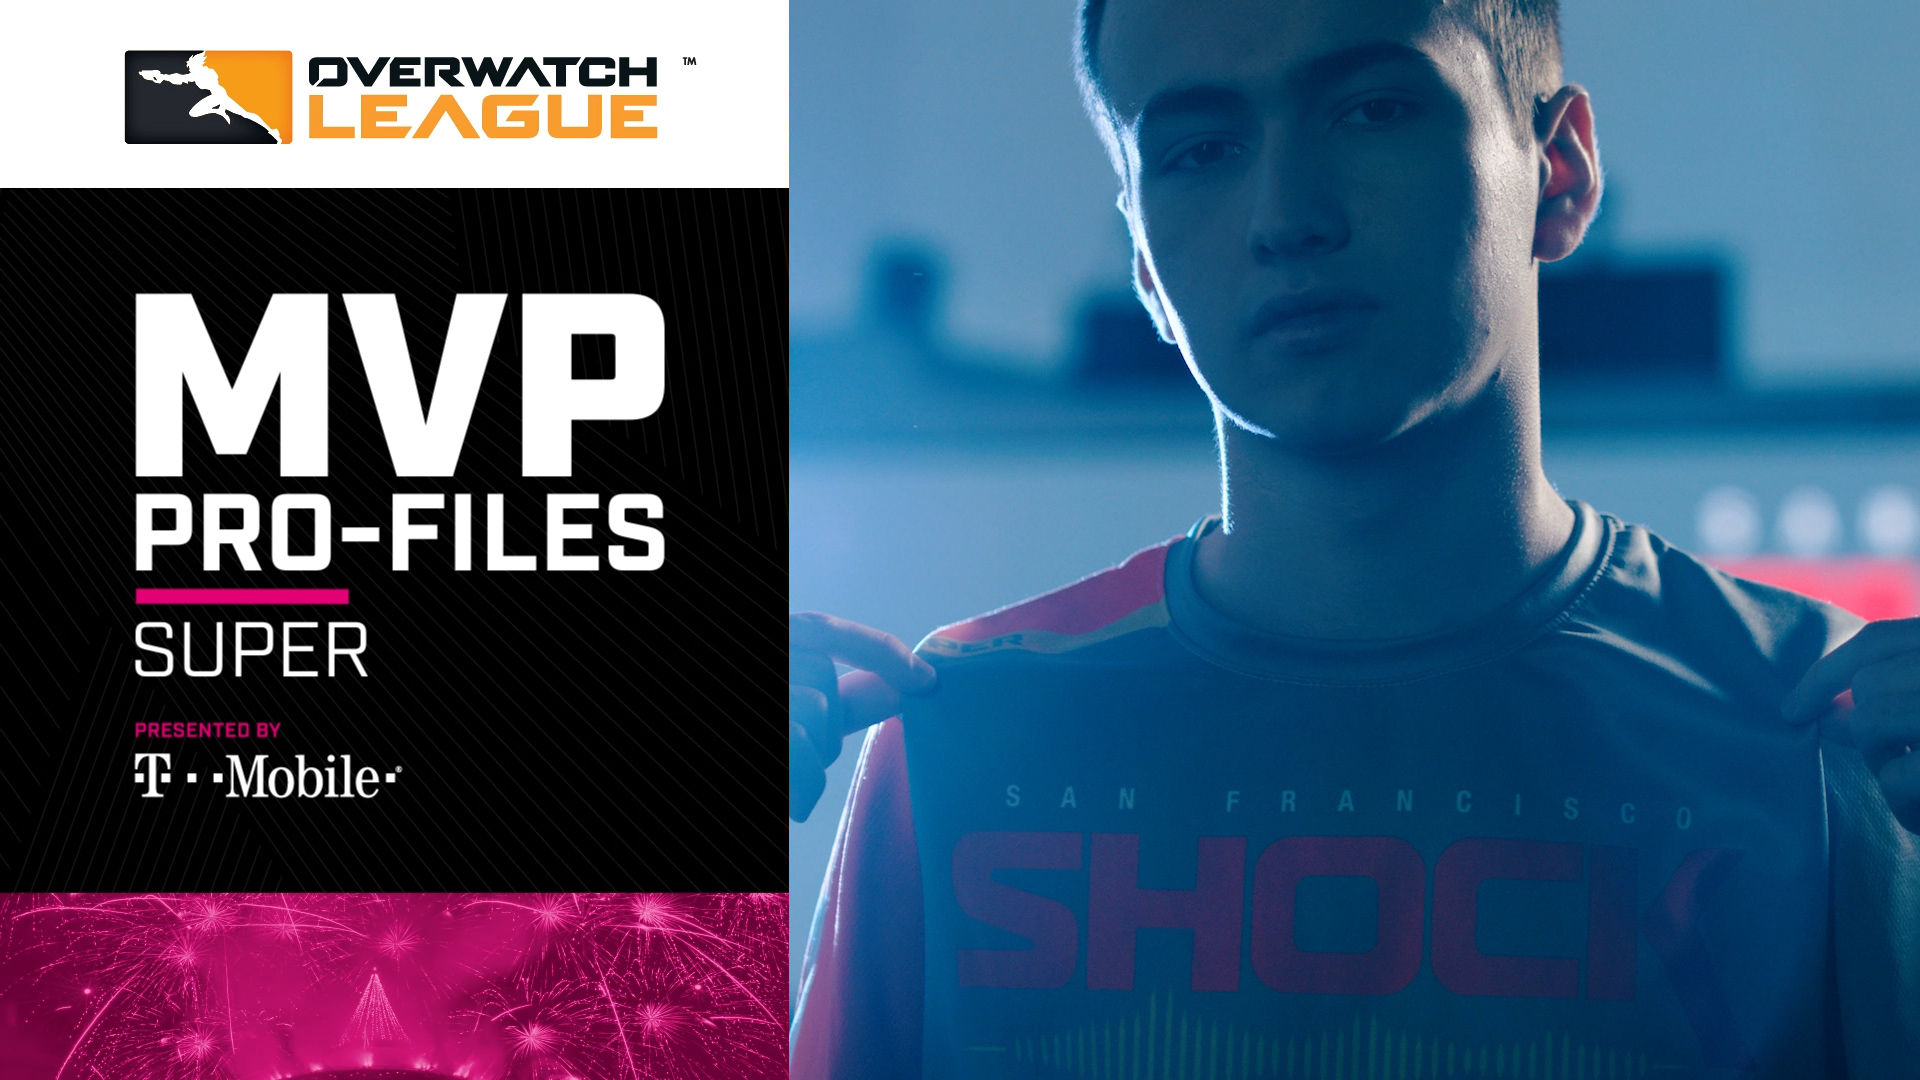 Overwatch League MVP Pro-Files: super